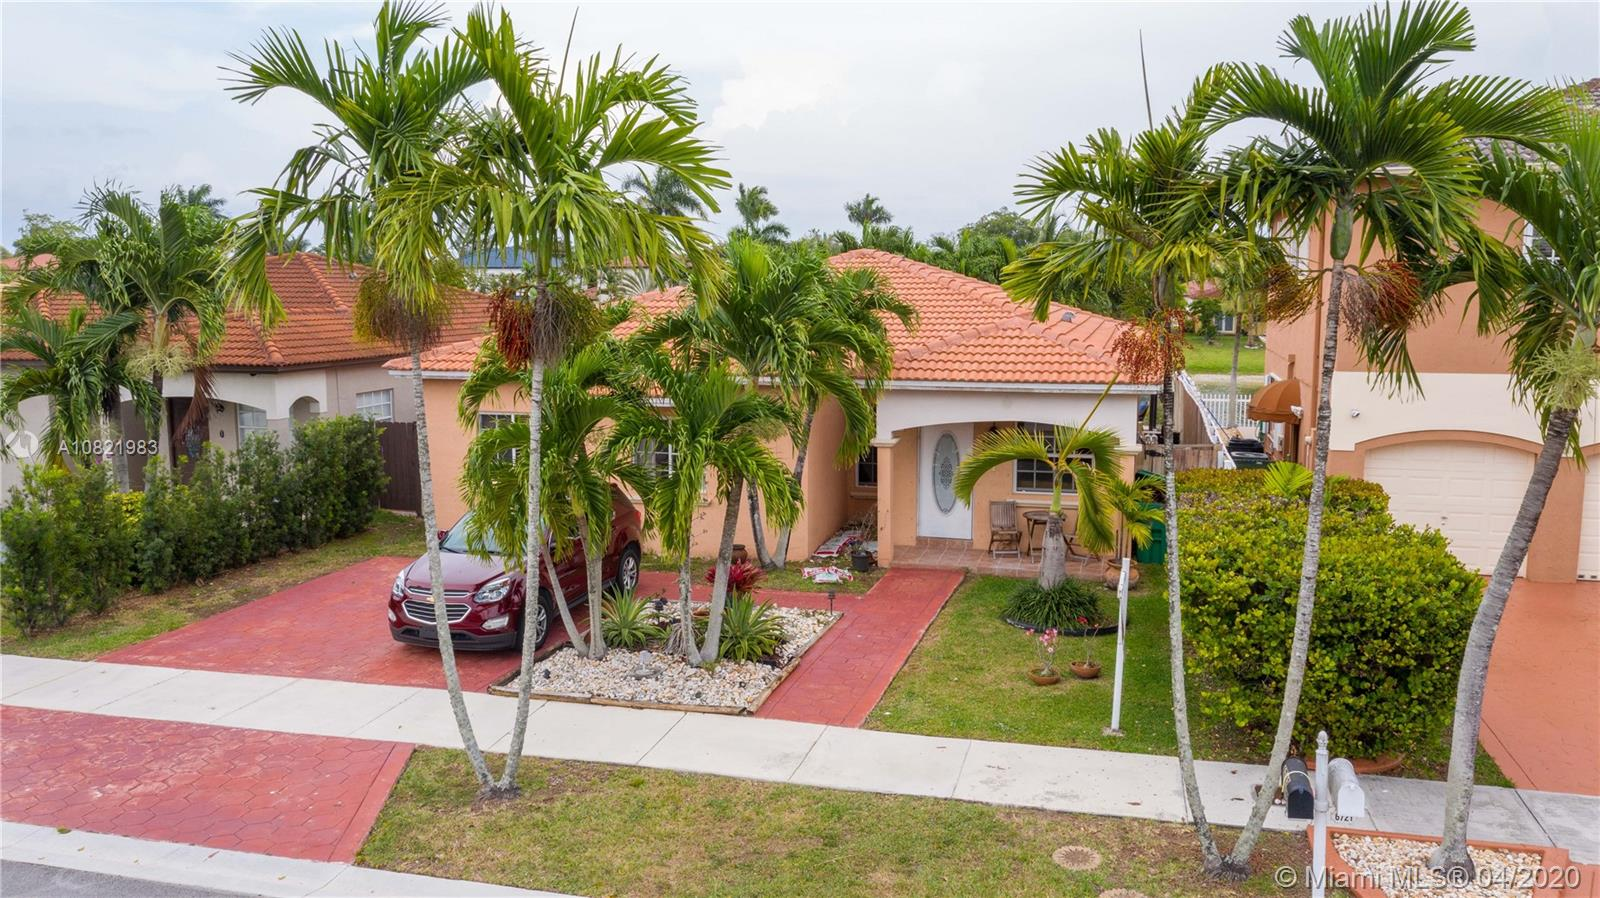 6703 SW 158th Ave, Miami, FL 33193